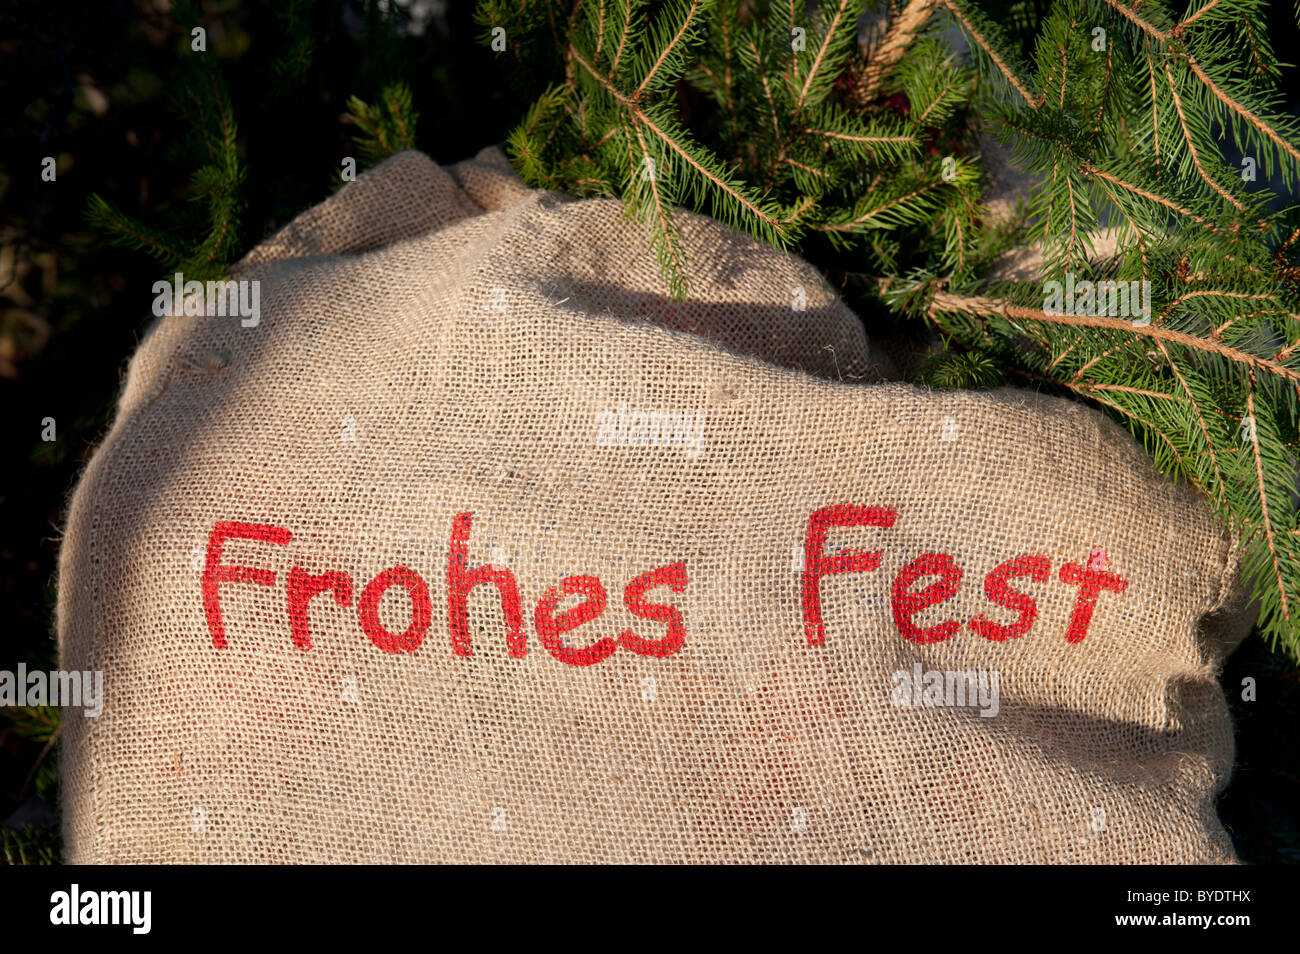 Frohes Fest or Merry Christmas, red lettering on a sack, spruce branches Stock Photo